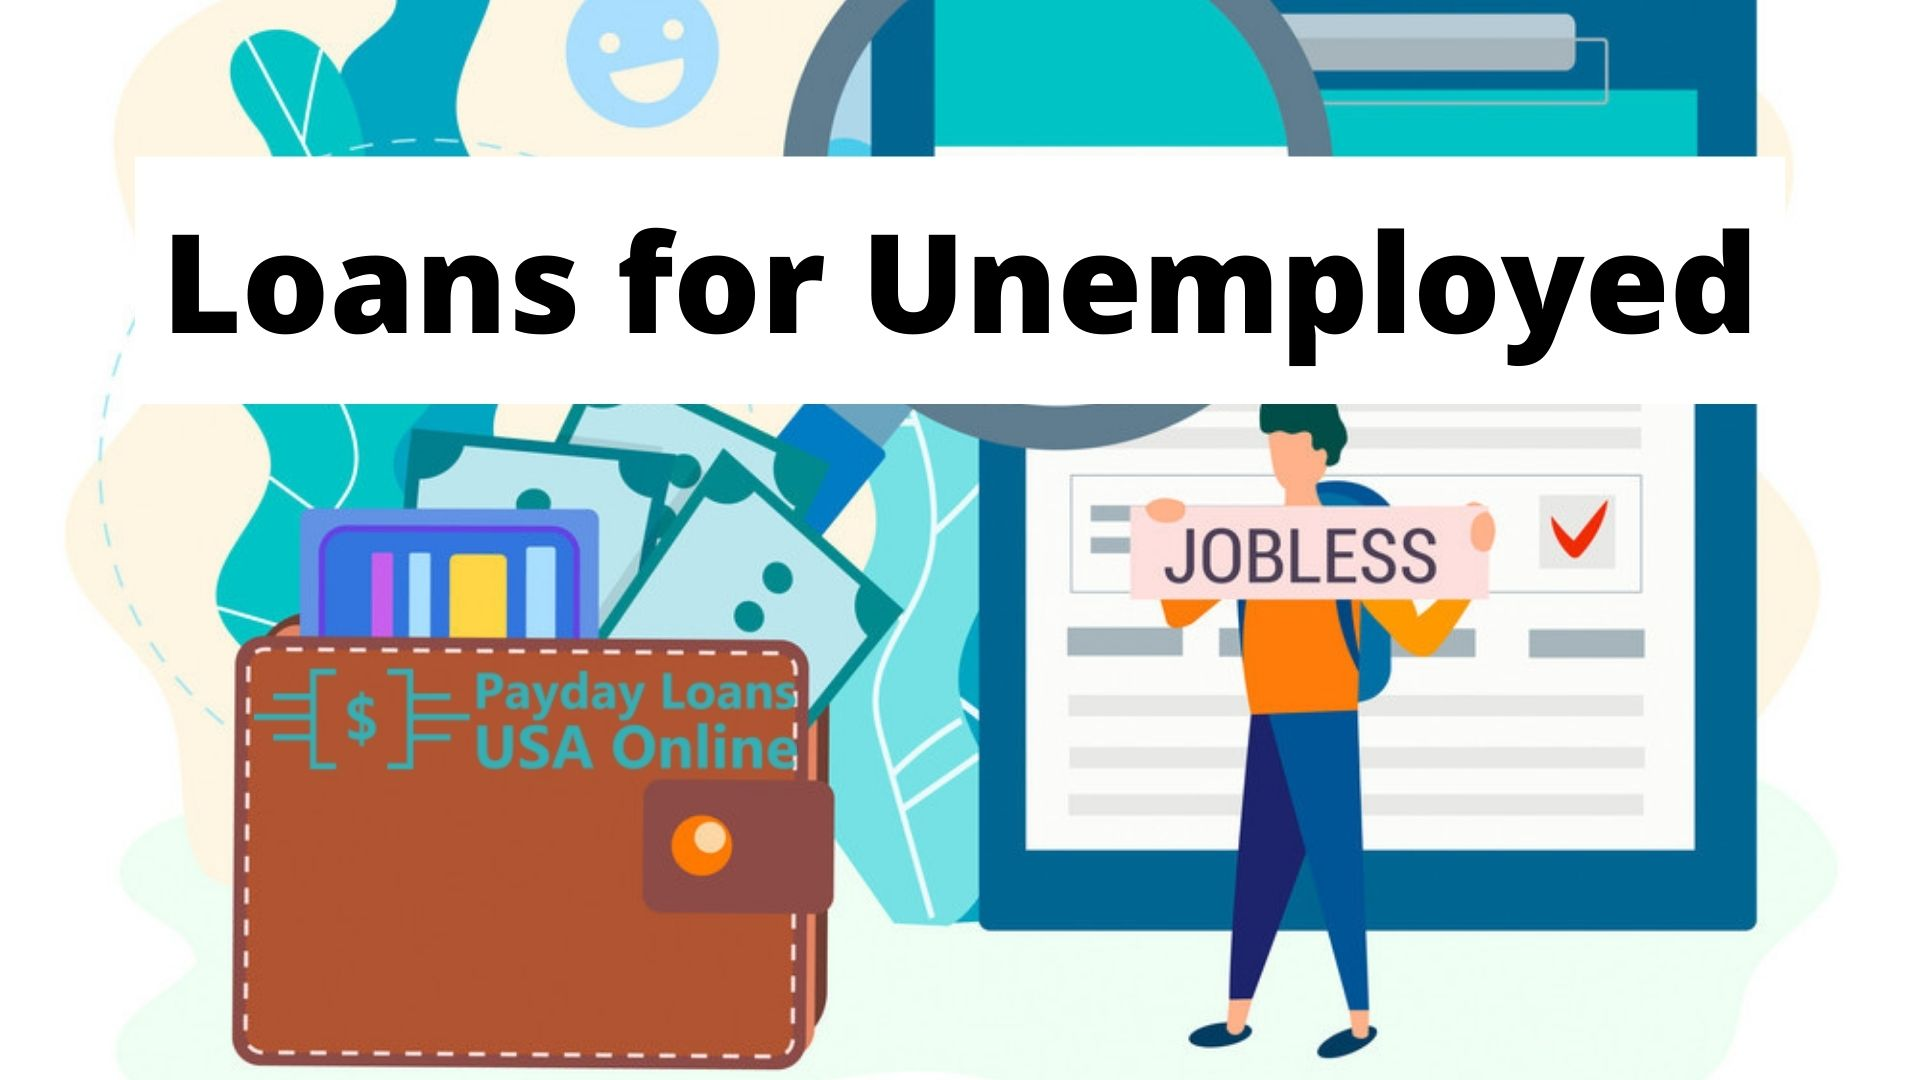 Loans for unemployed with no job